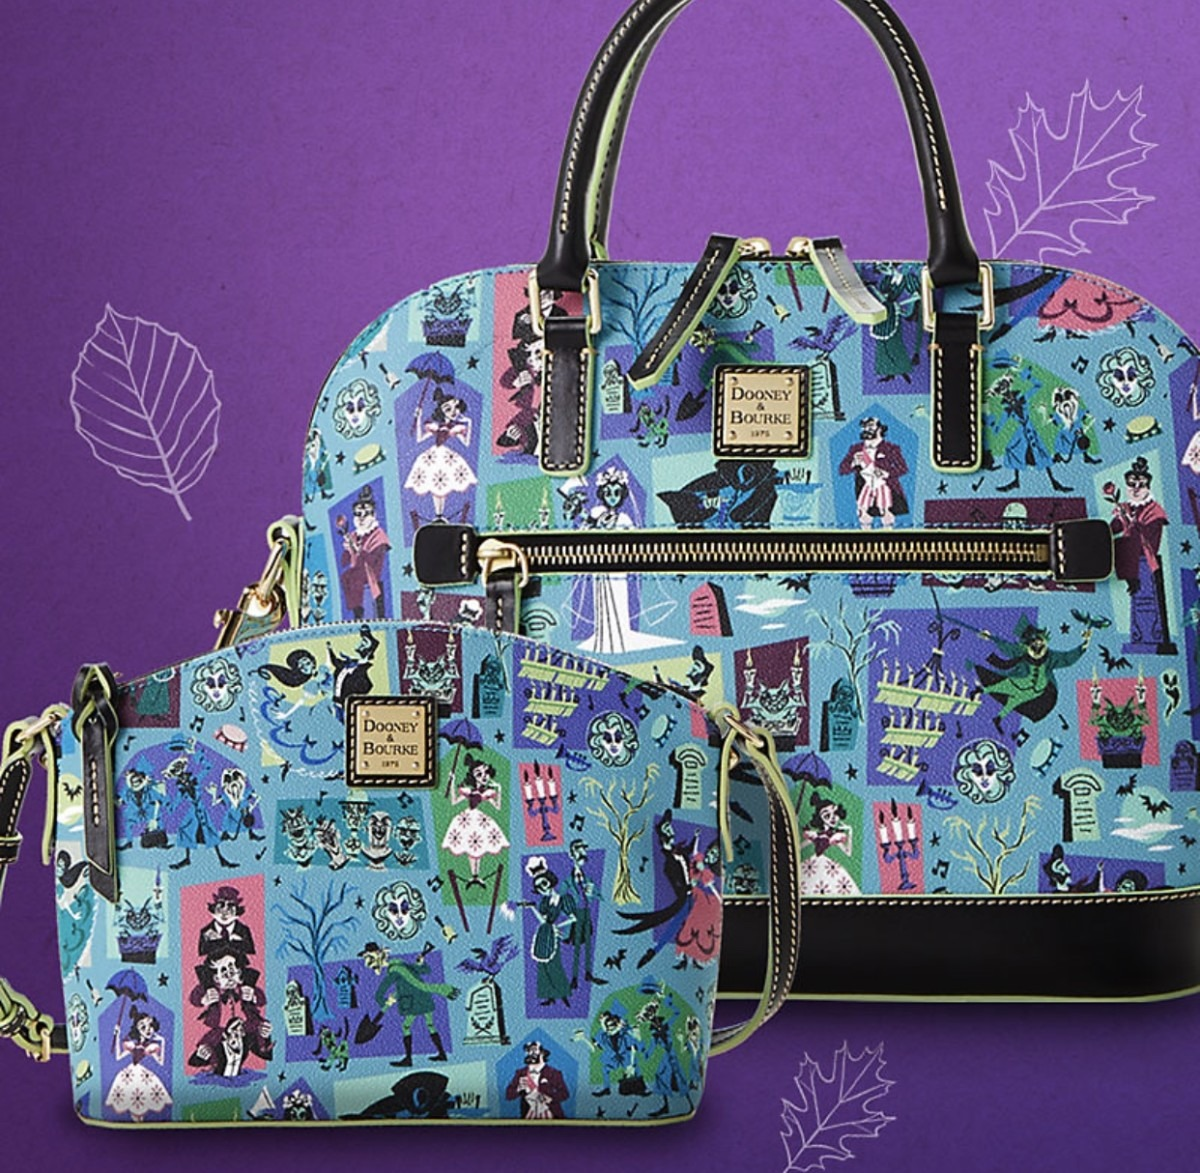 NEW! The Haunted Mansion by Dooney & Bourke 1